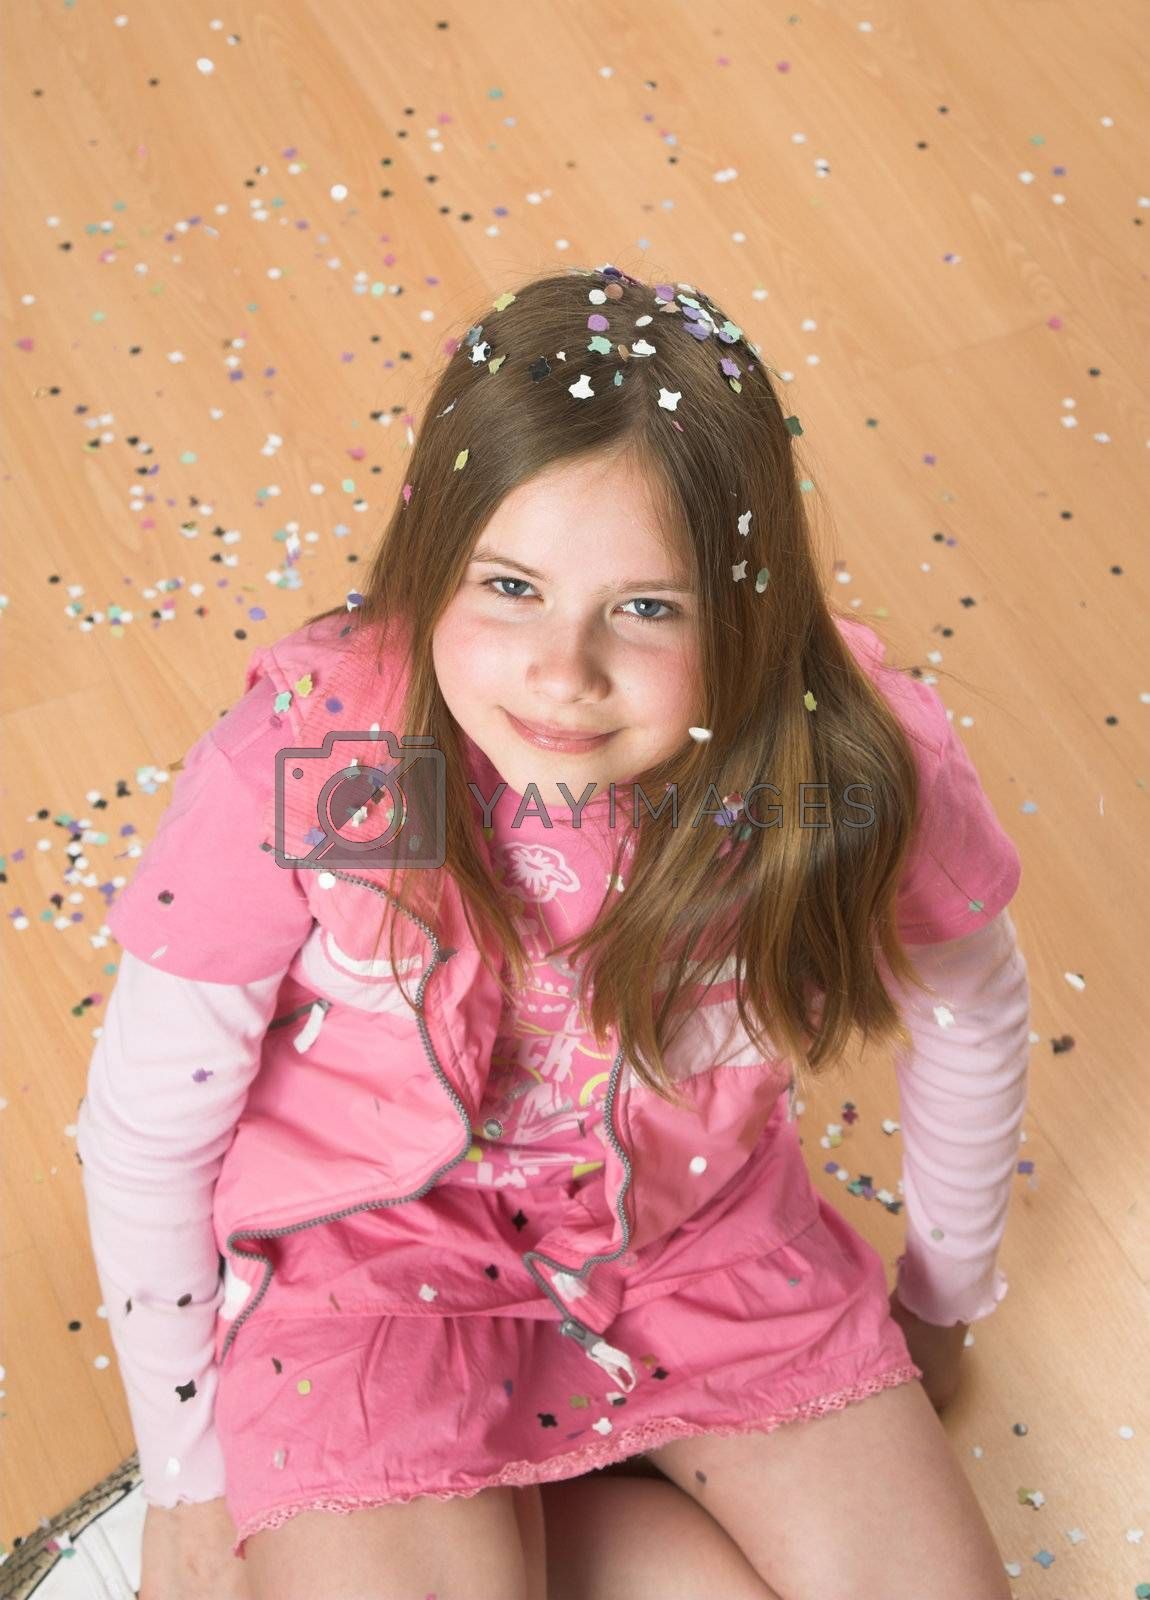 Little blond girl sitting on the floor covered in confetti